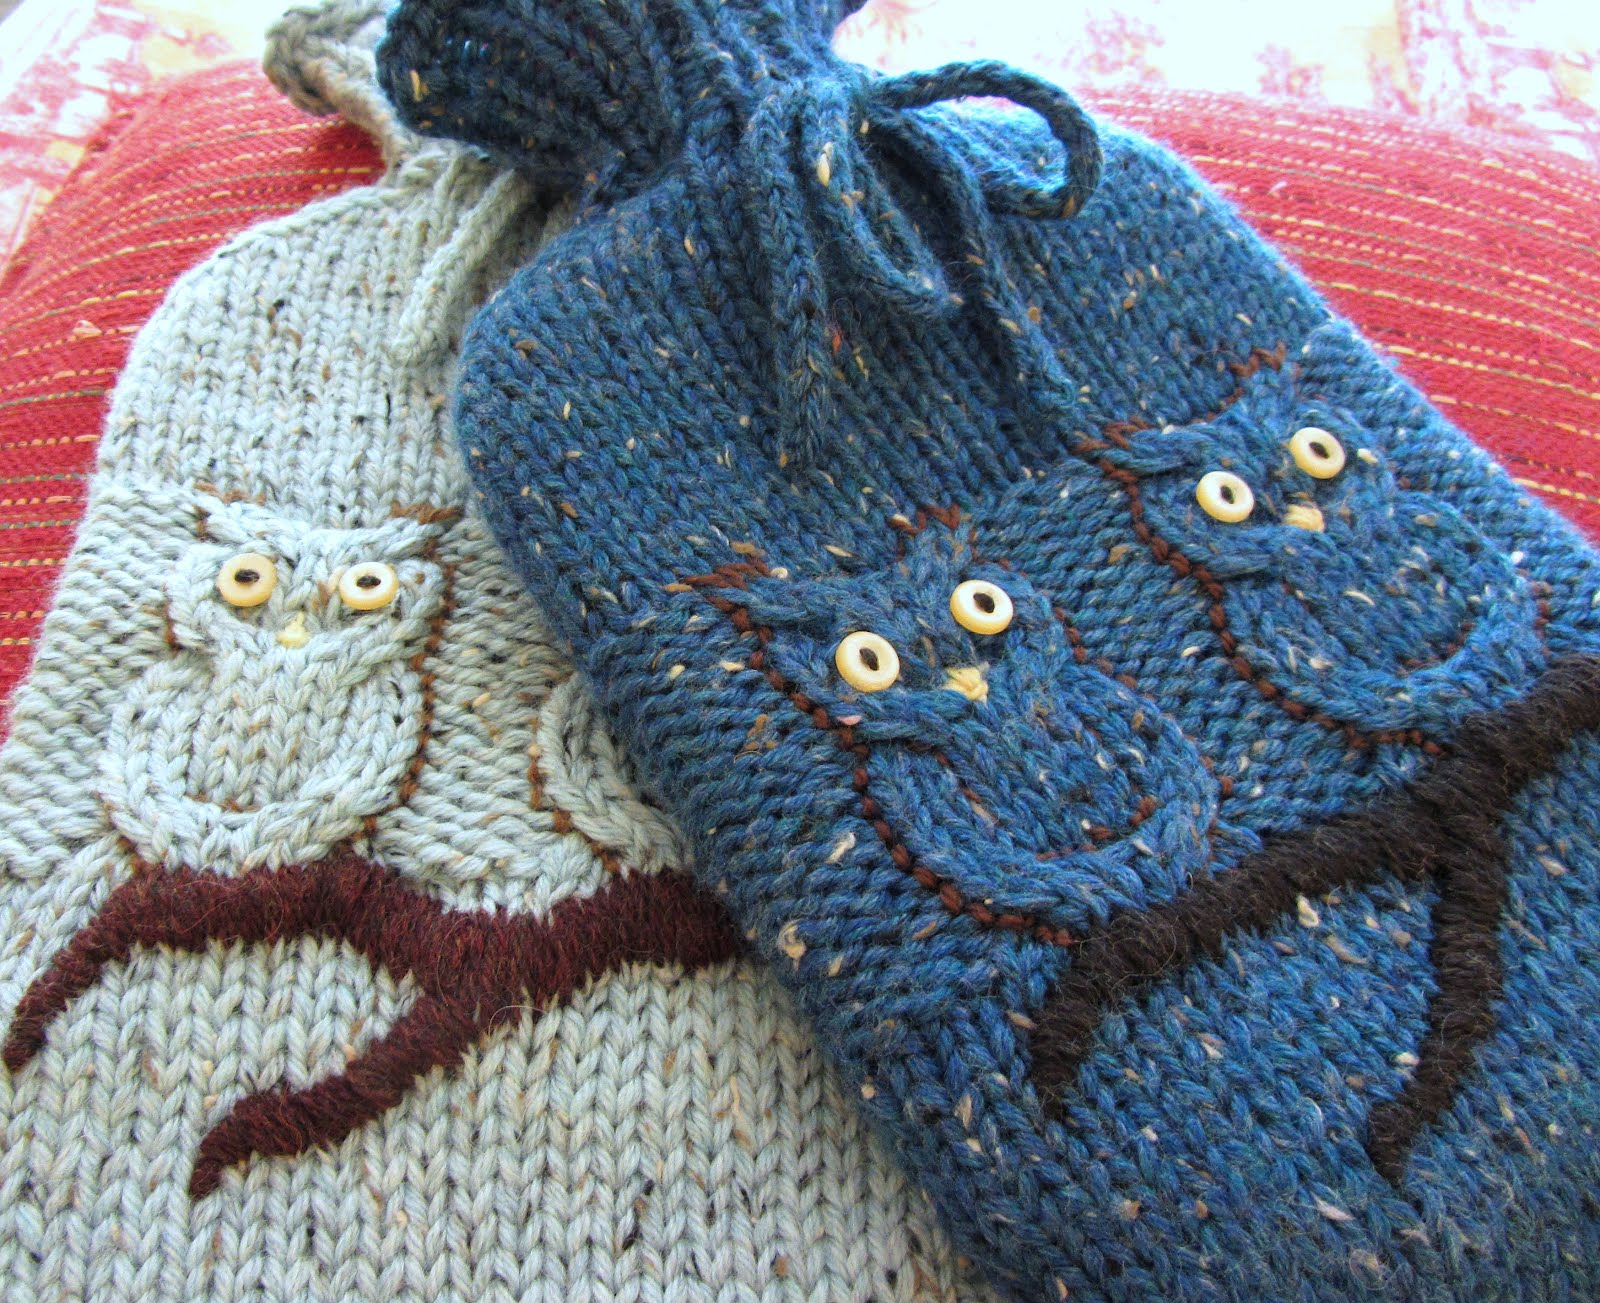 Knitting Pattern For A Hot Water Bottle Cover : Wedding Gifts - KnitPicks Staff Knitting Blog